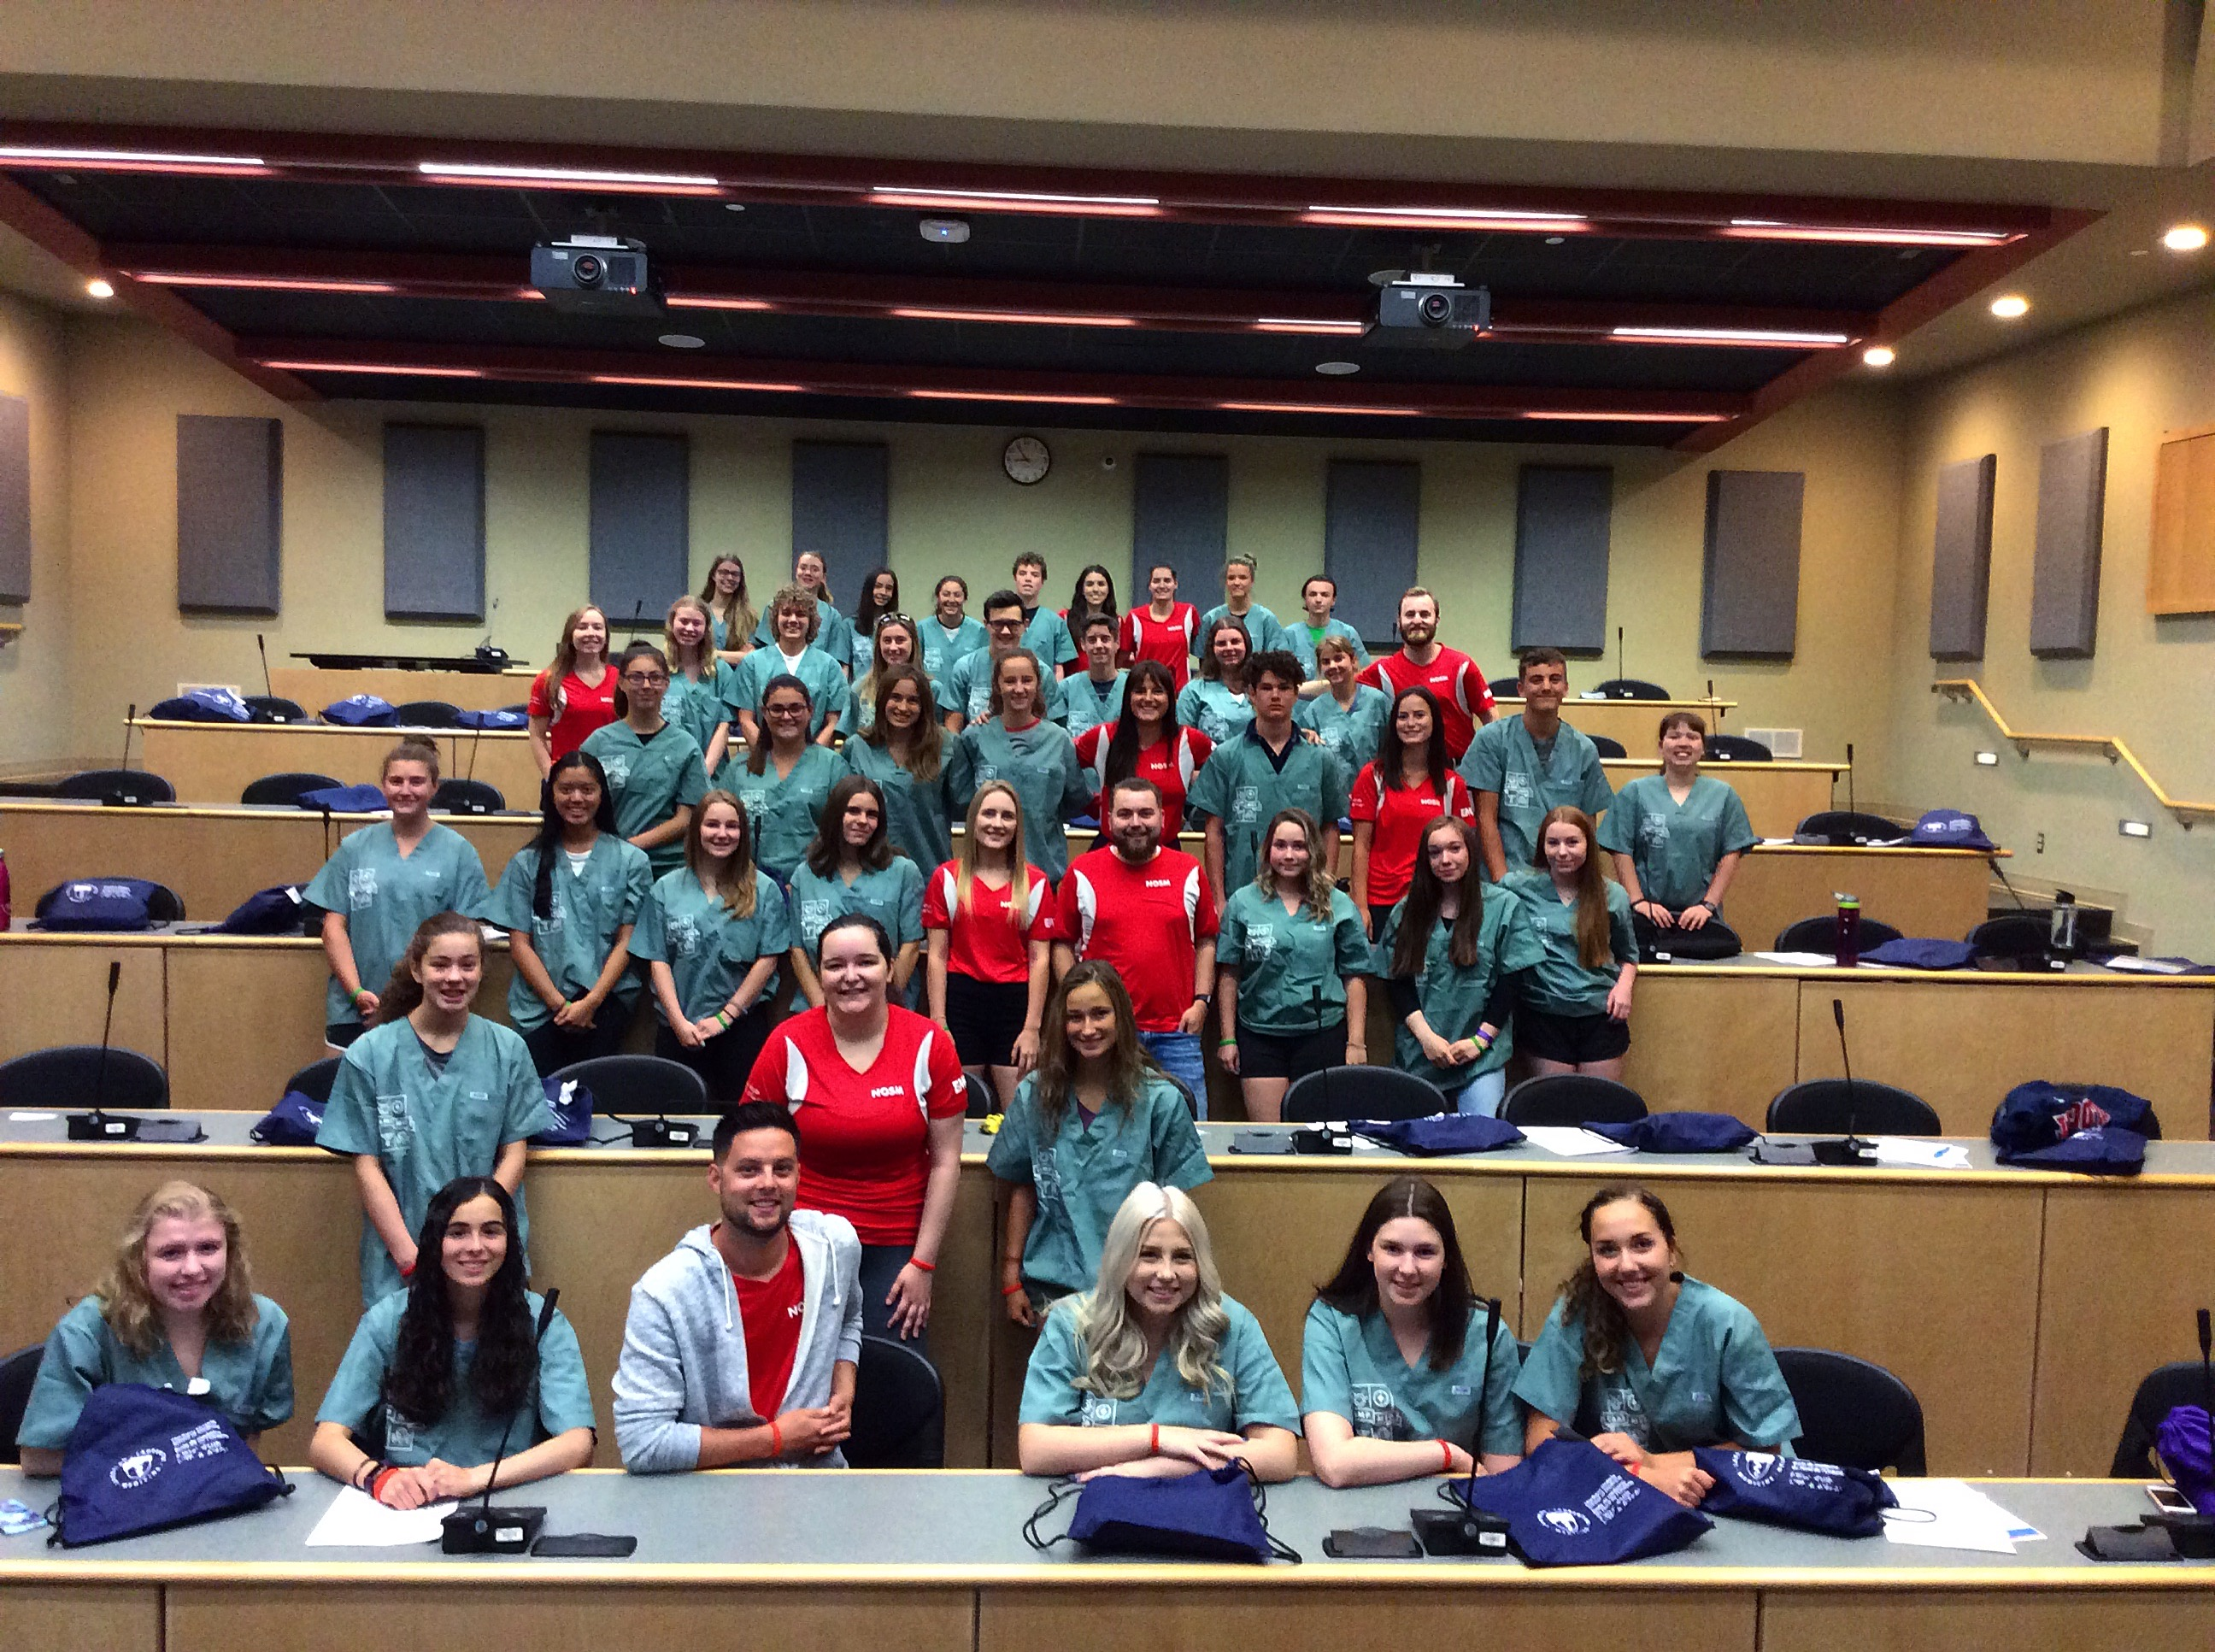 Group photo of all campers and team leads in large lecture hall classroom